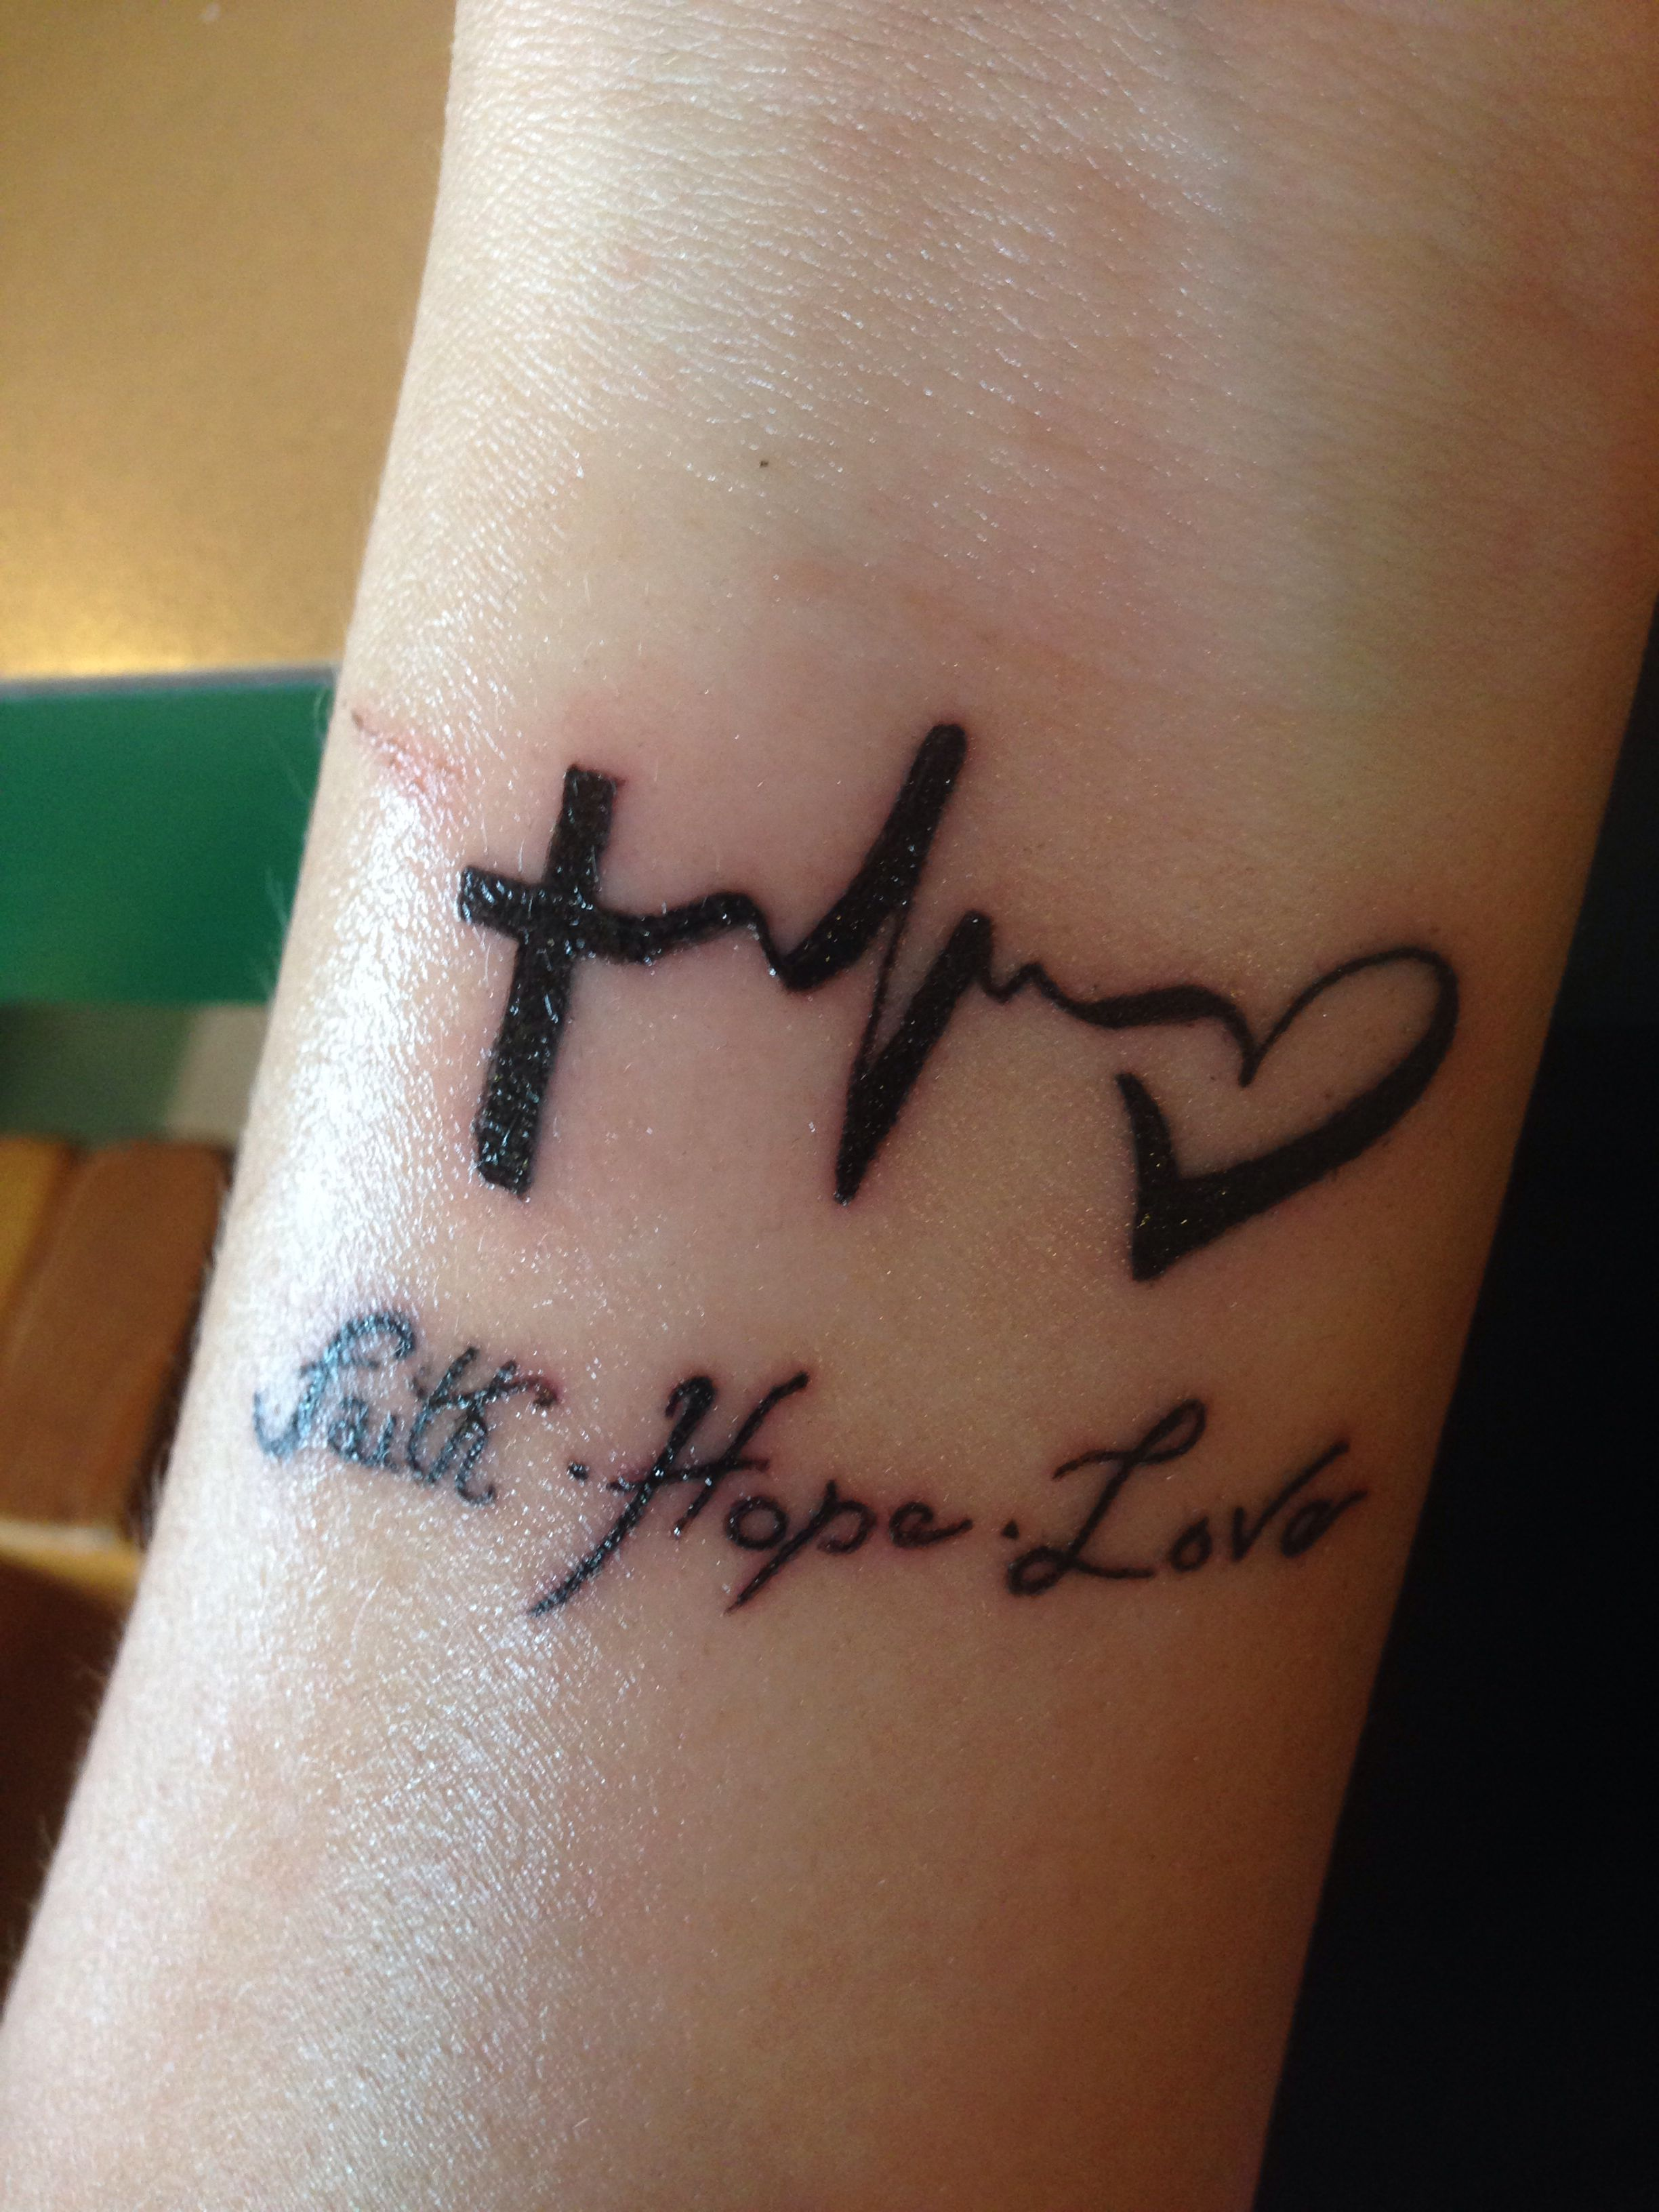 wrist tattoo faith hope love tattoo pinterest wrist tattoo tattoo and tatoos. Black Bedroom Furniture Sets. Home Design Ideas